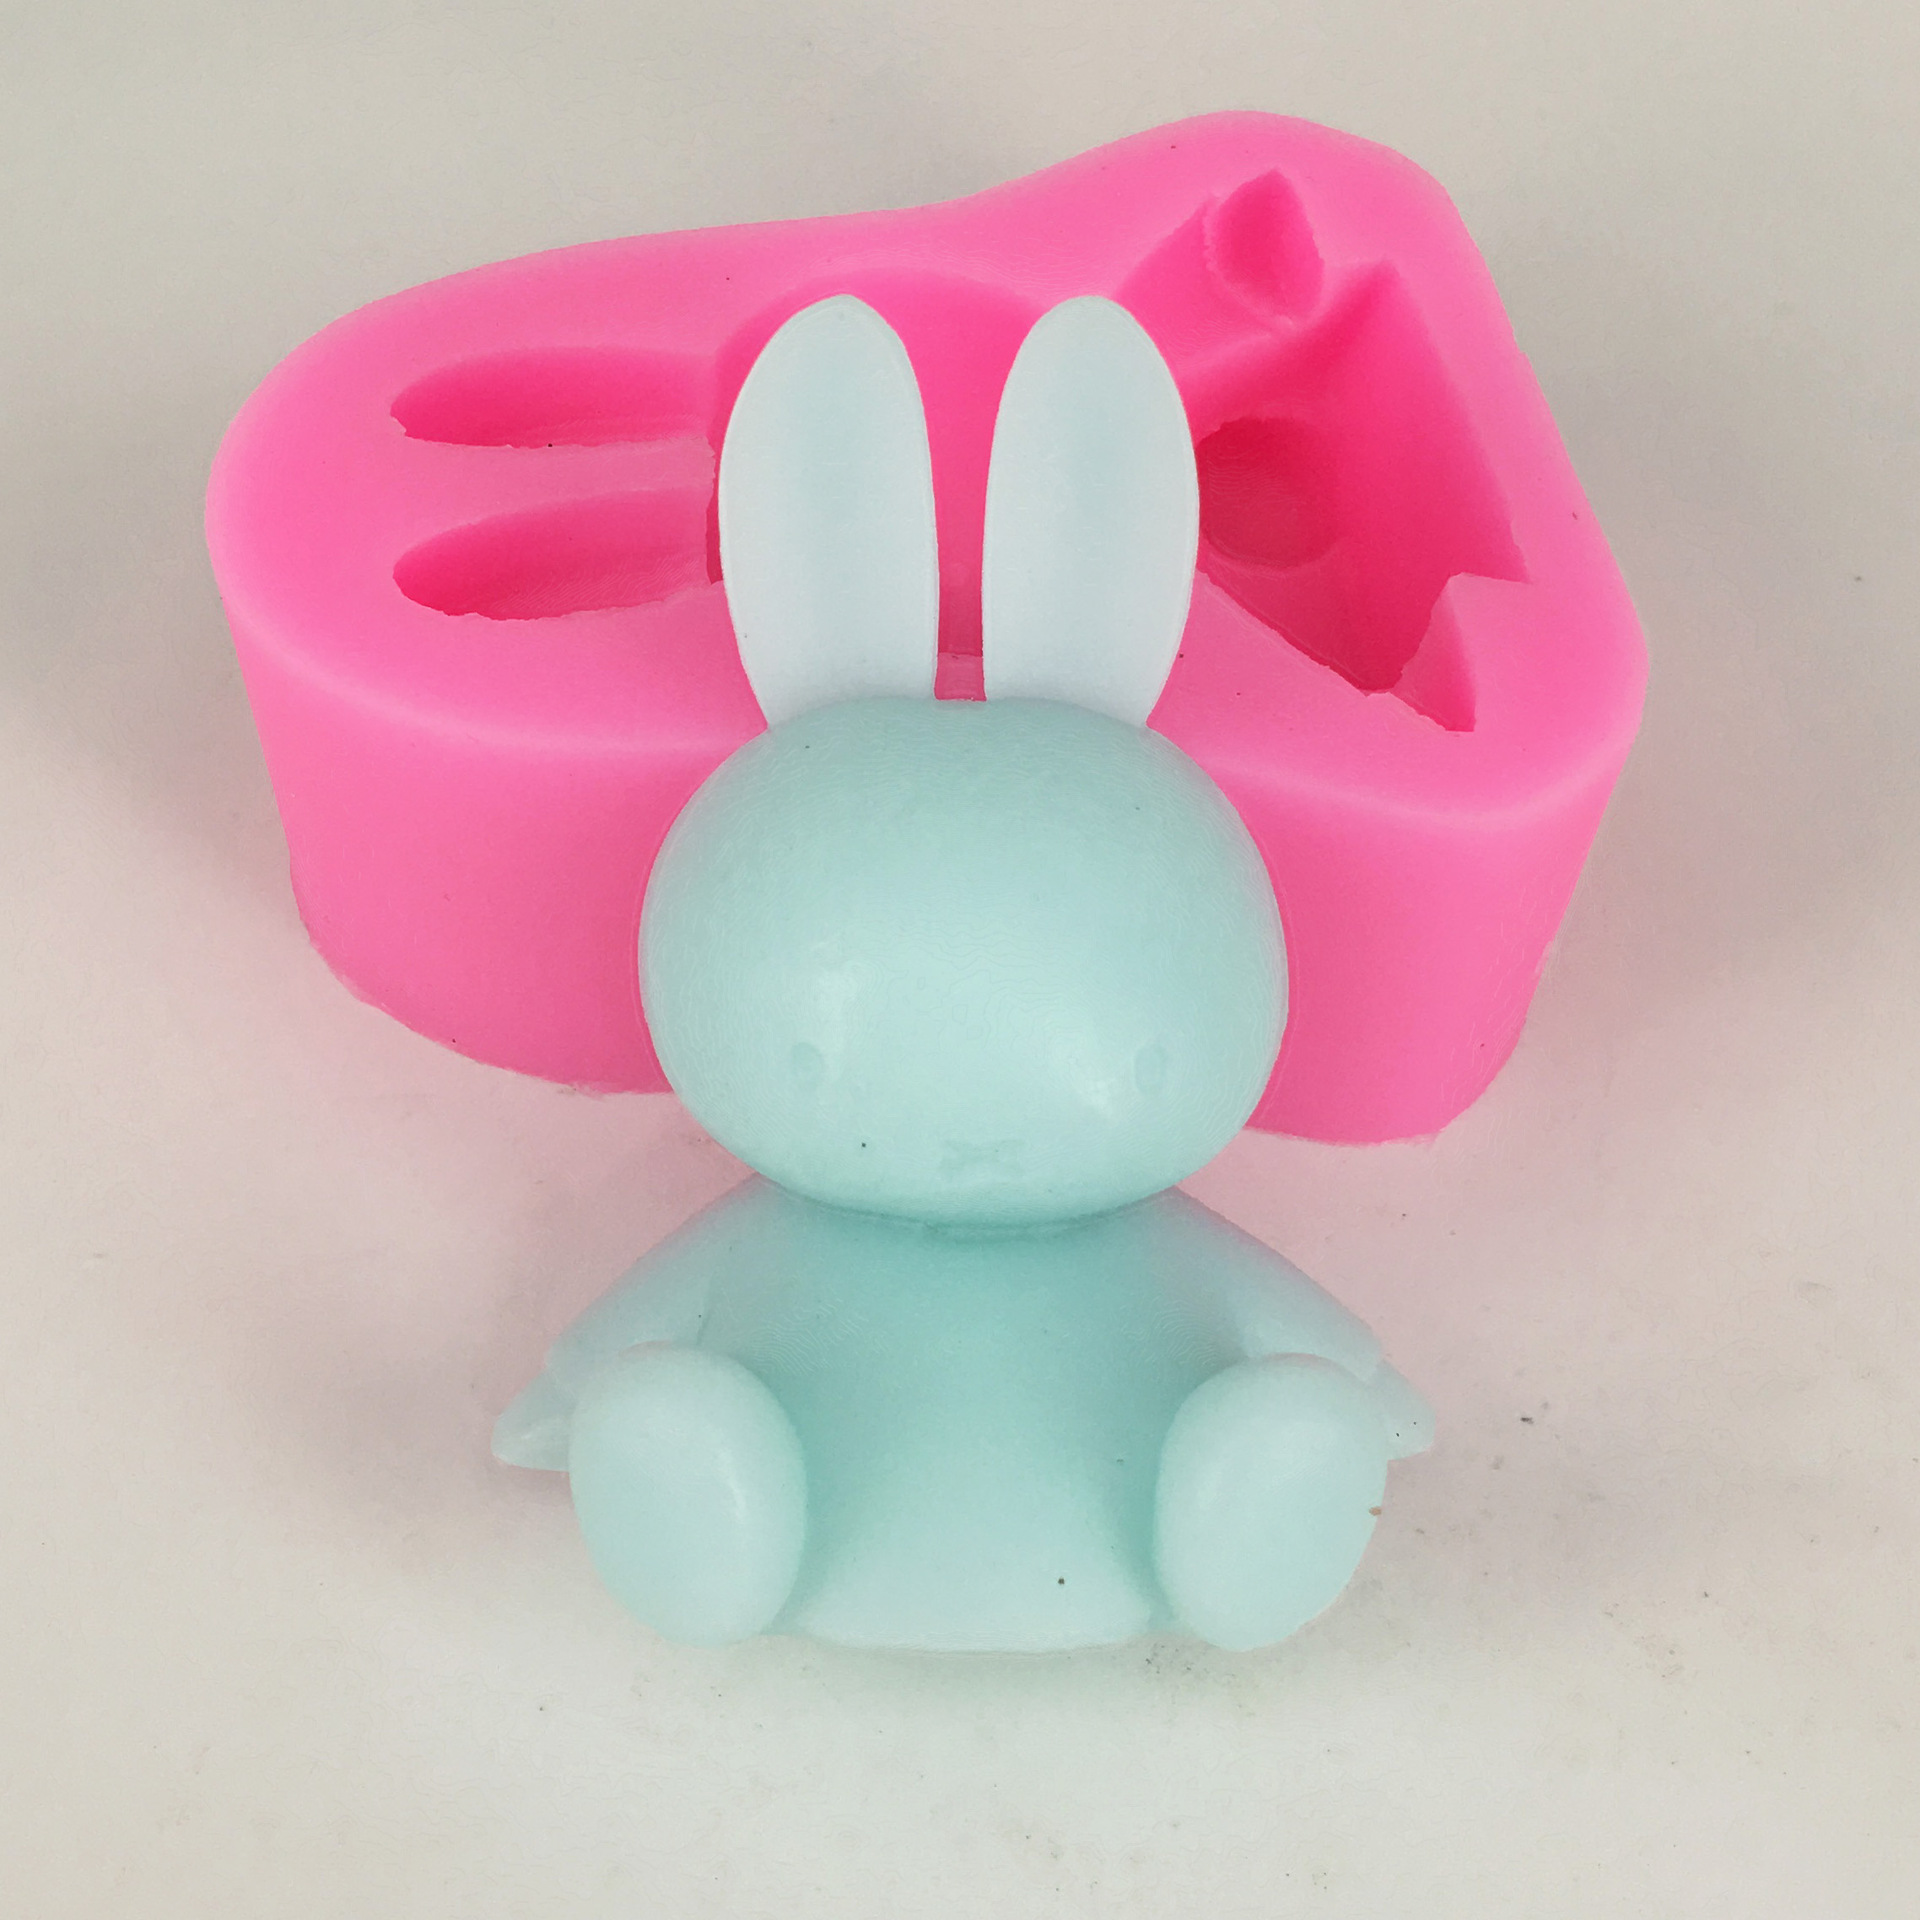 Rabbit scented Gypsum mould Silicone soap mould Handmade Soap Making Aromatic Plaster Pendant Silicon Mold